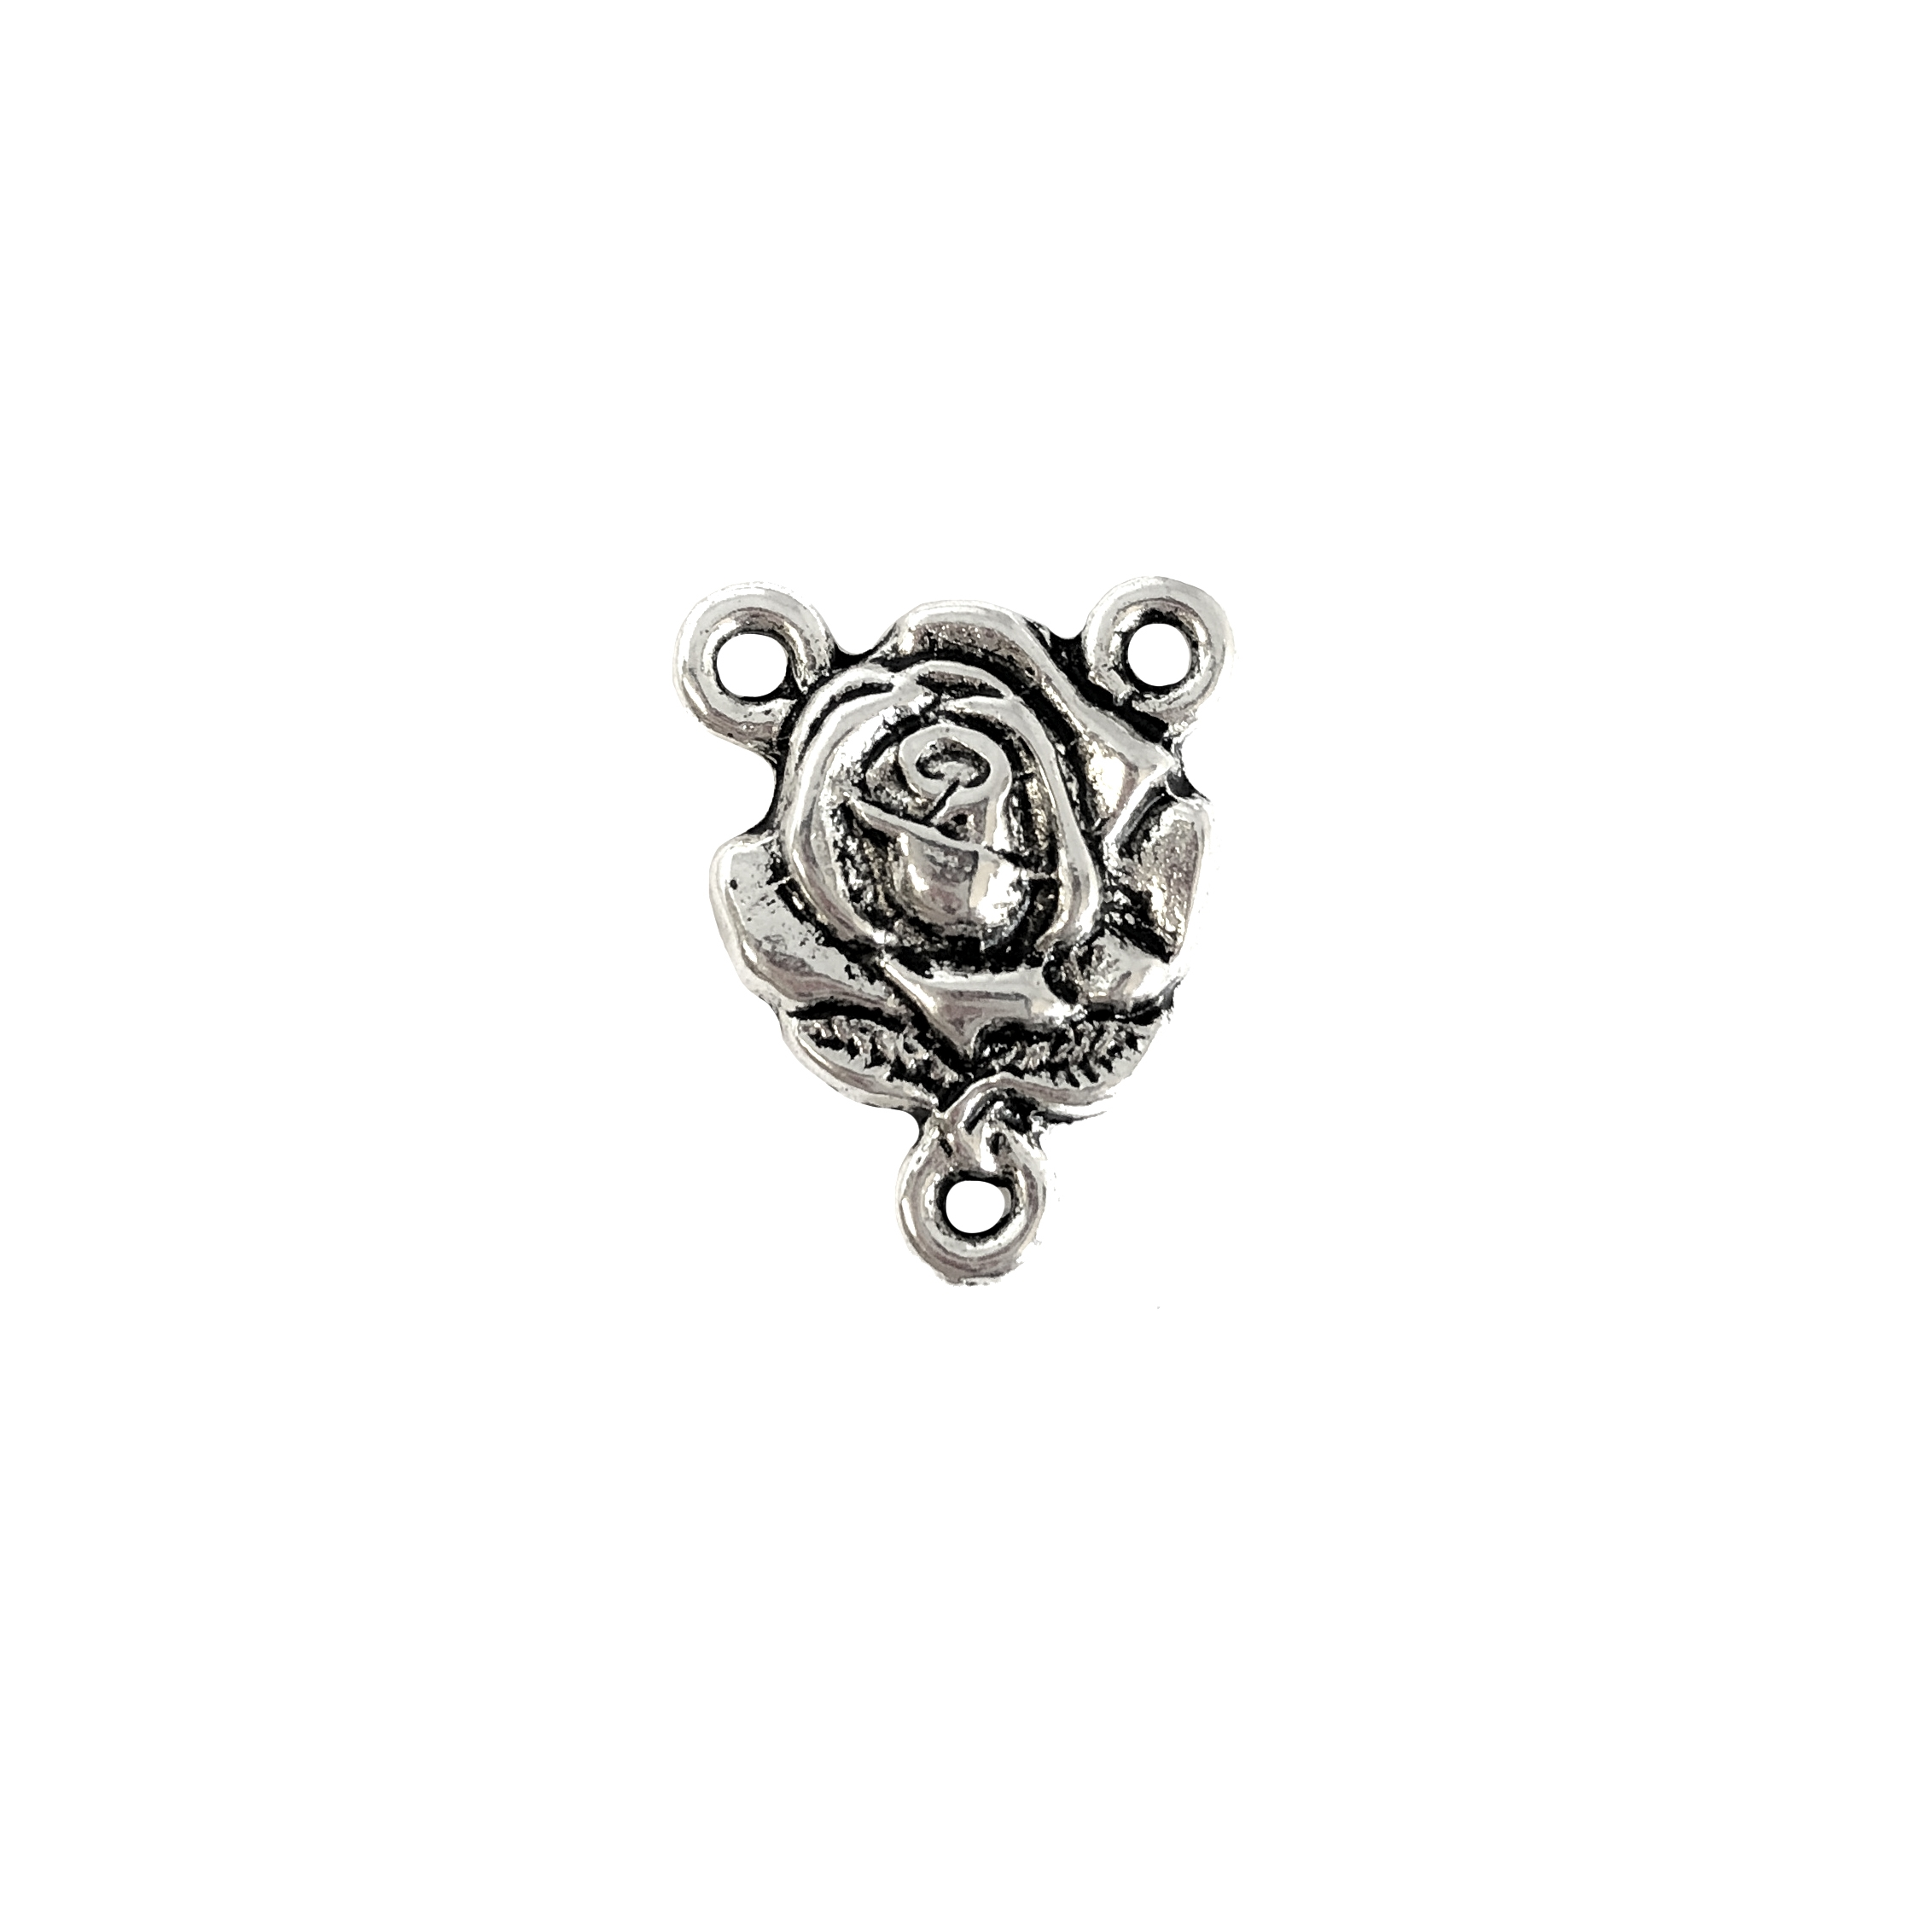 Rose Connector, antique silver, lavalier, lavalier style, Rose, Connector, Flowers, Roses, Jewelry Finding, Victorian Style, Zinc Base, 19 x 15mm,  B'sue Boutiques, Jewelry Supplies, 09840